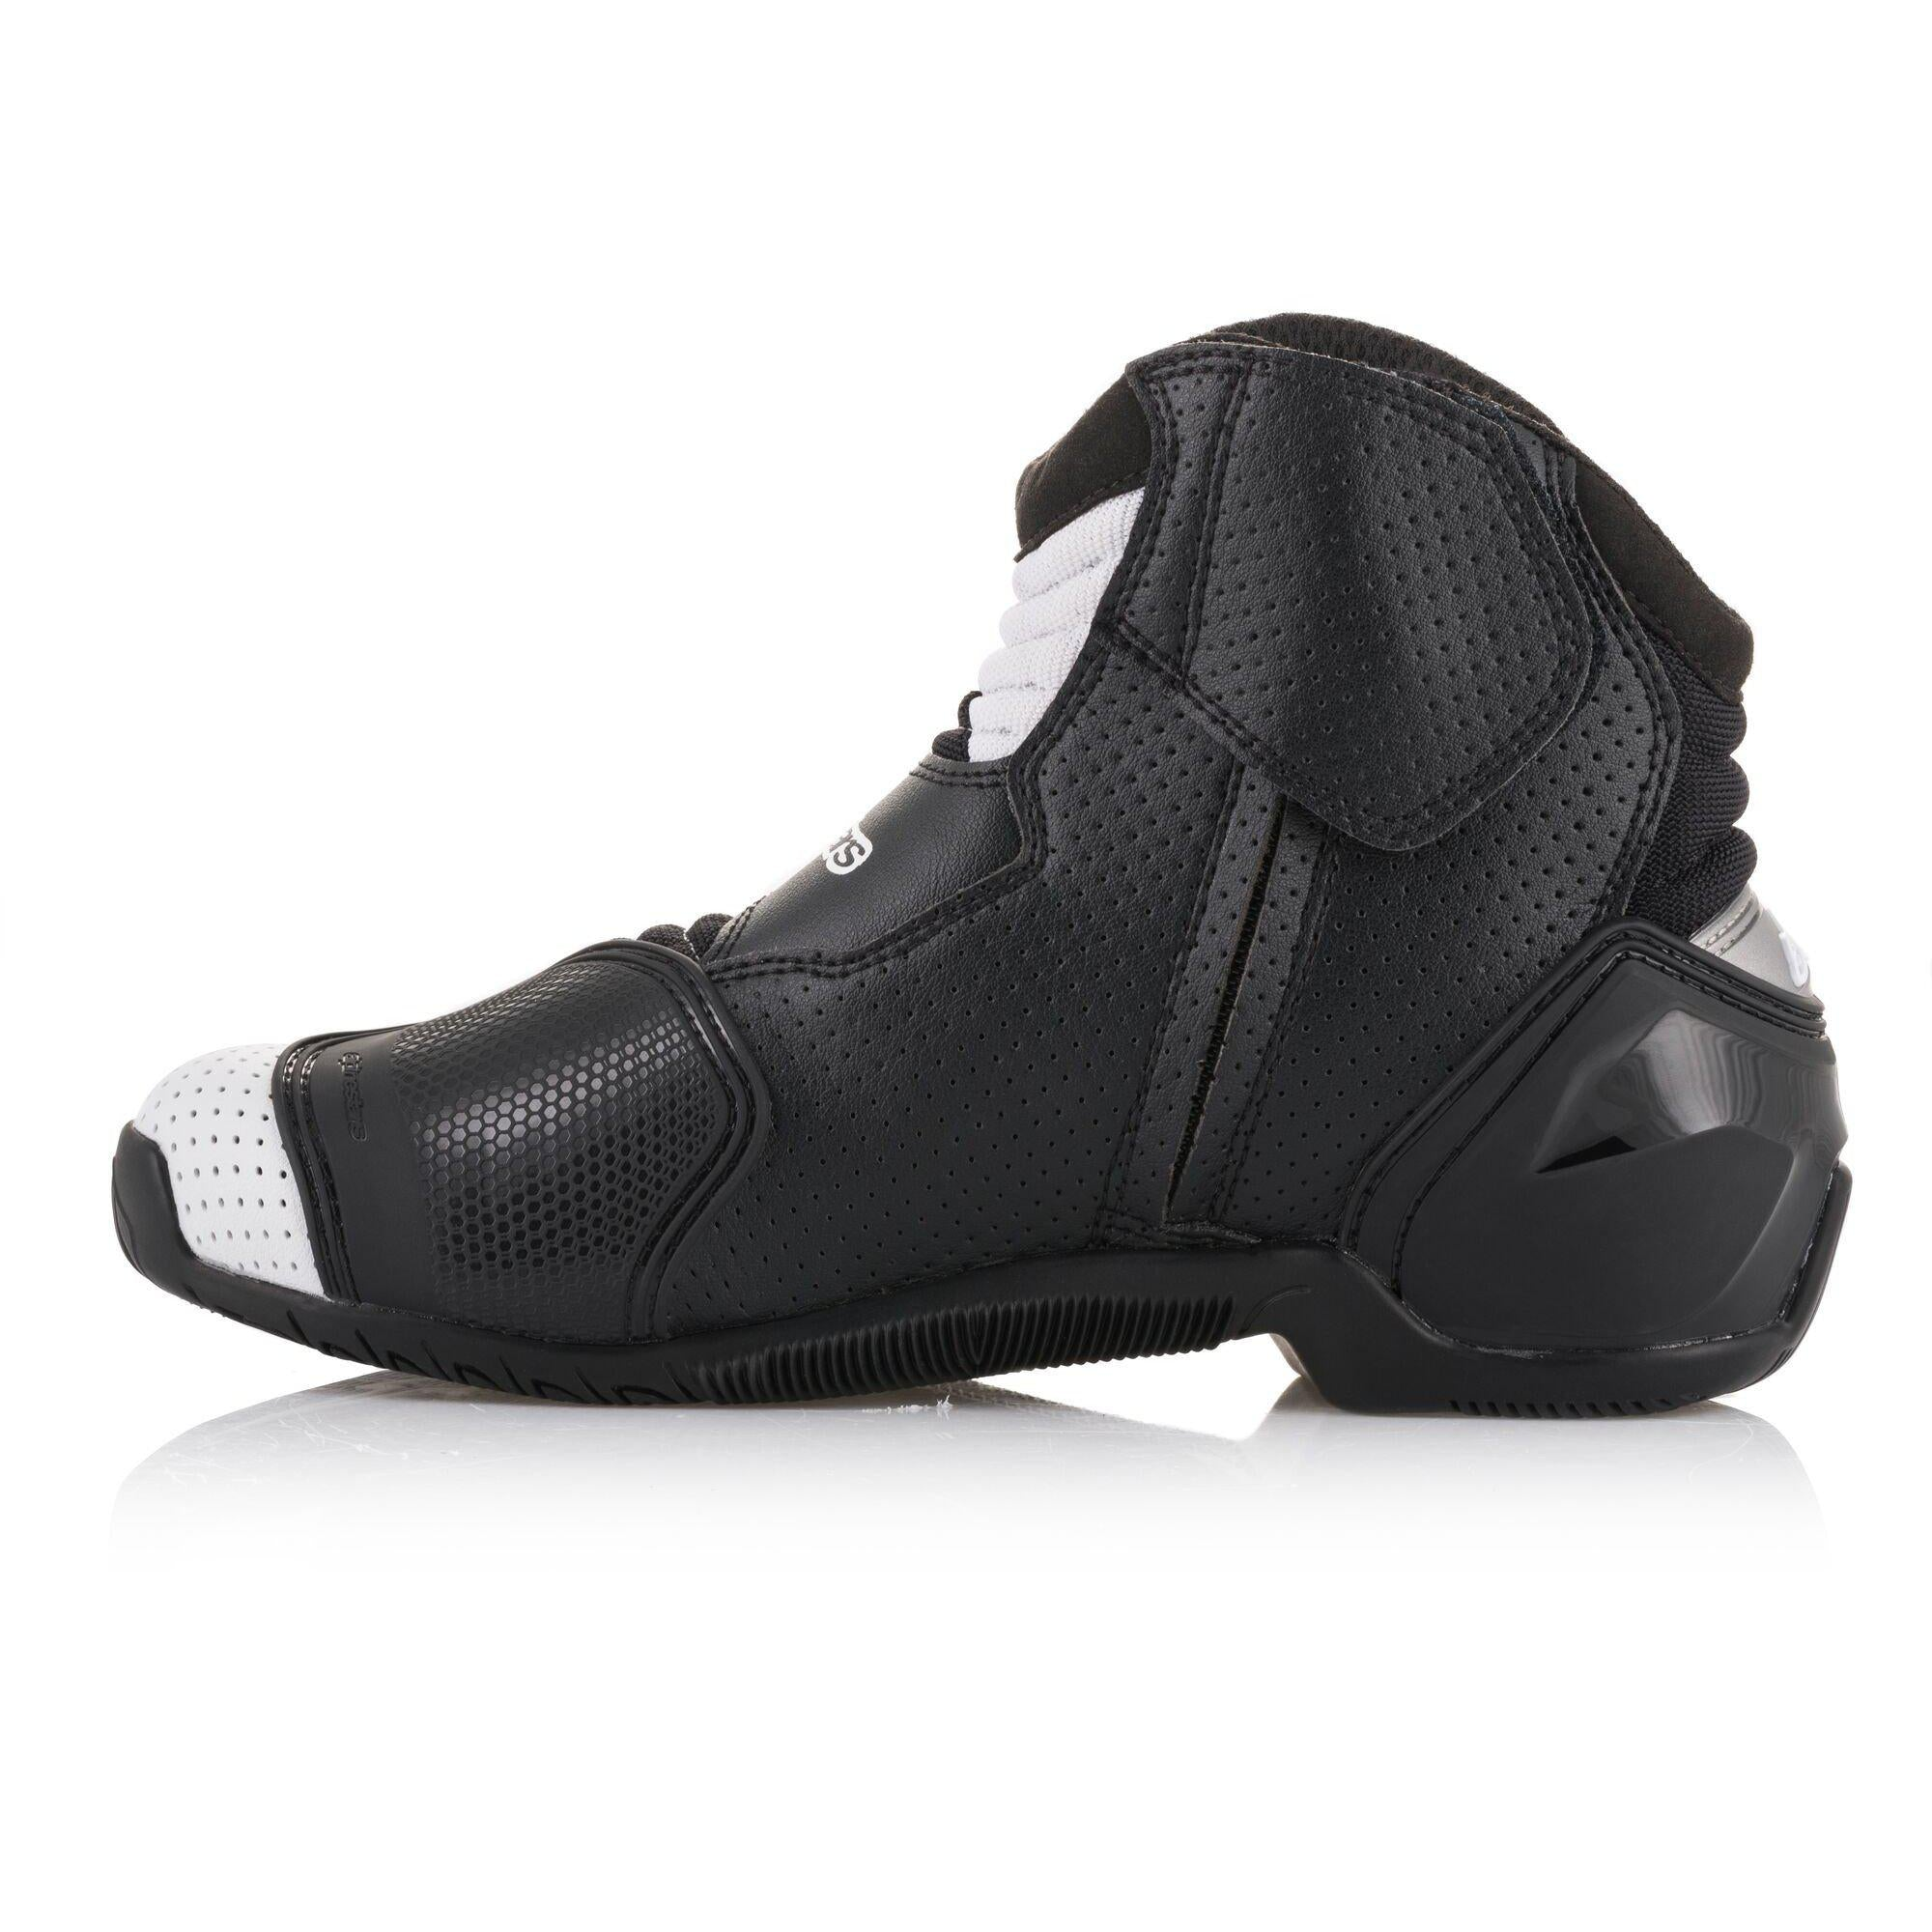 Black Choose Size ALPINESTARS SMX-1 R Vented Low-Cut Motorcycle Riding Boots